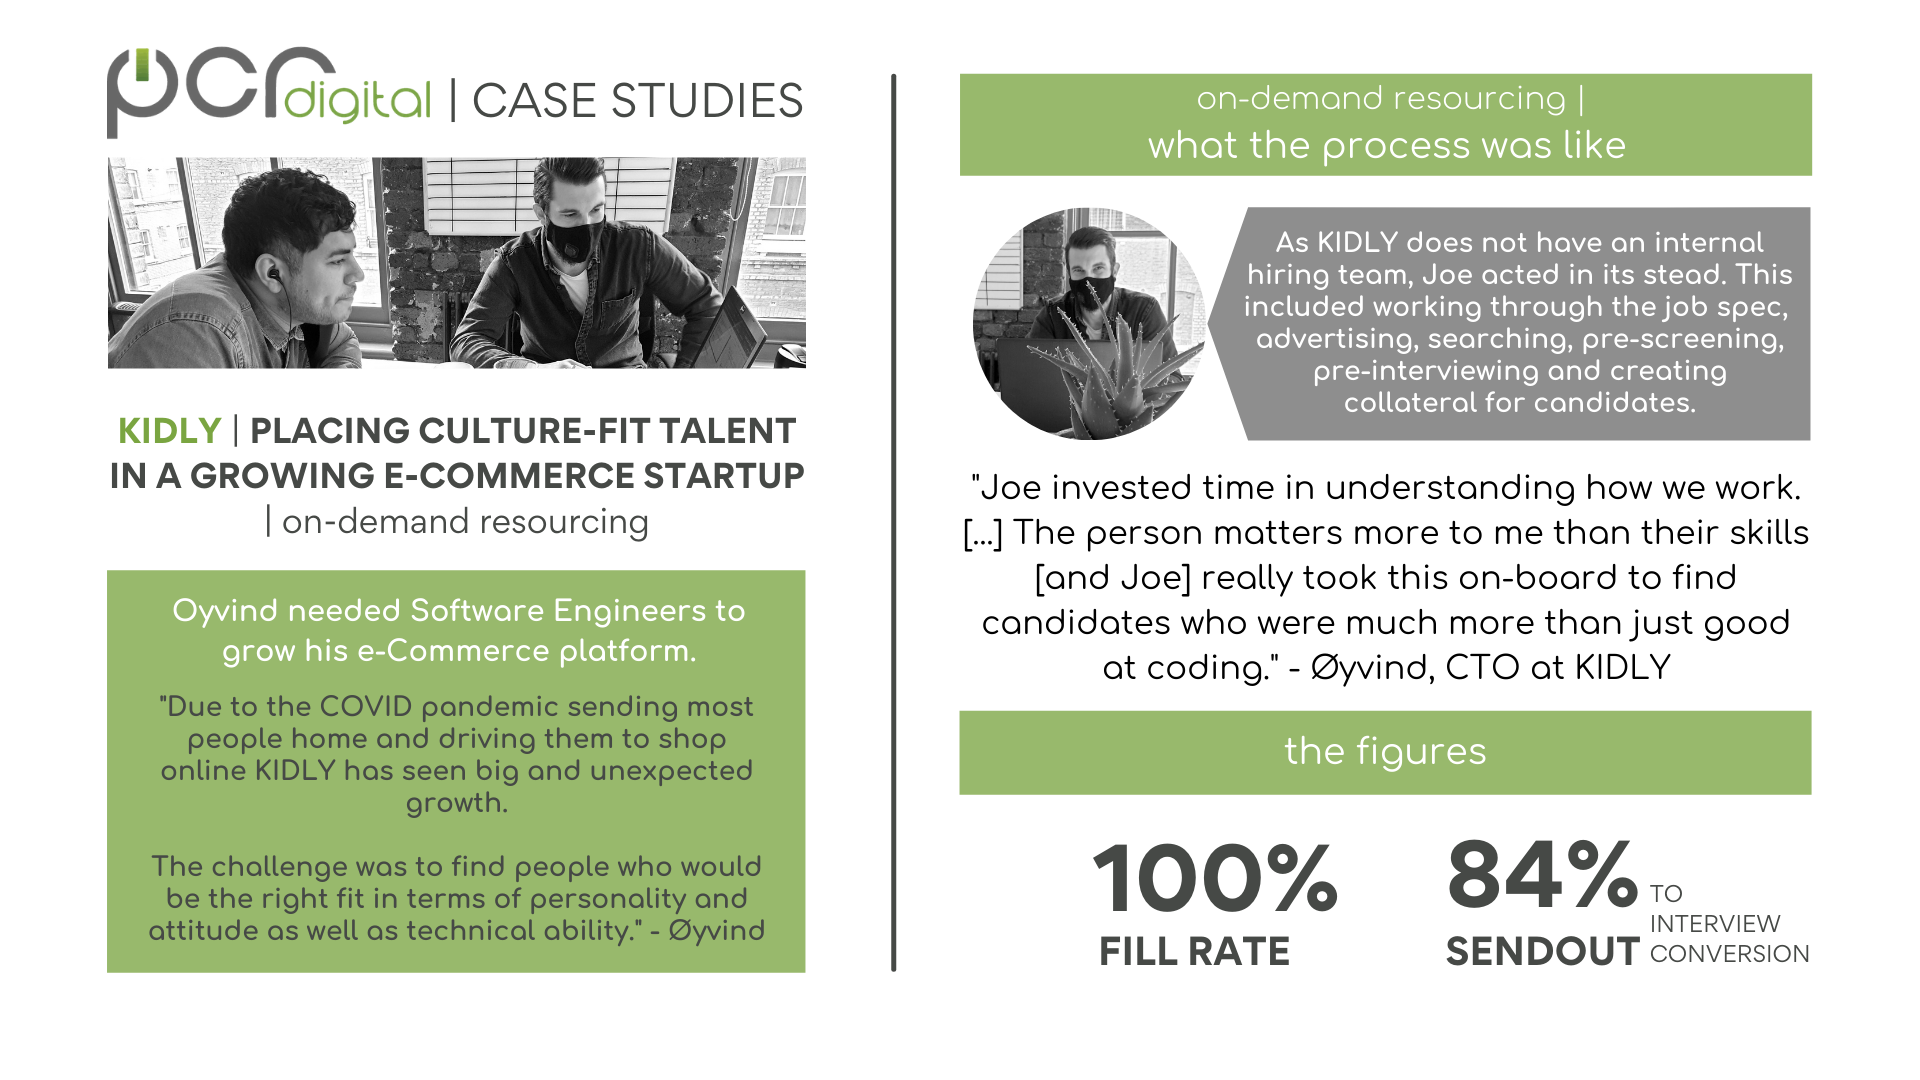 """CASE STUDY/ TESTIMONIAL FOR KIDLY:  Placing culture-fit talent in a growing e-commerce startup 